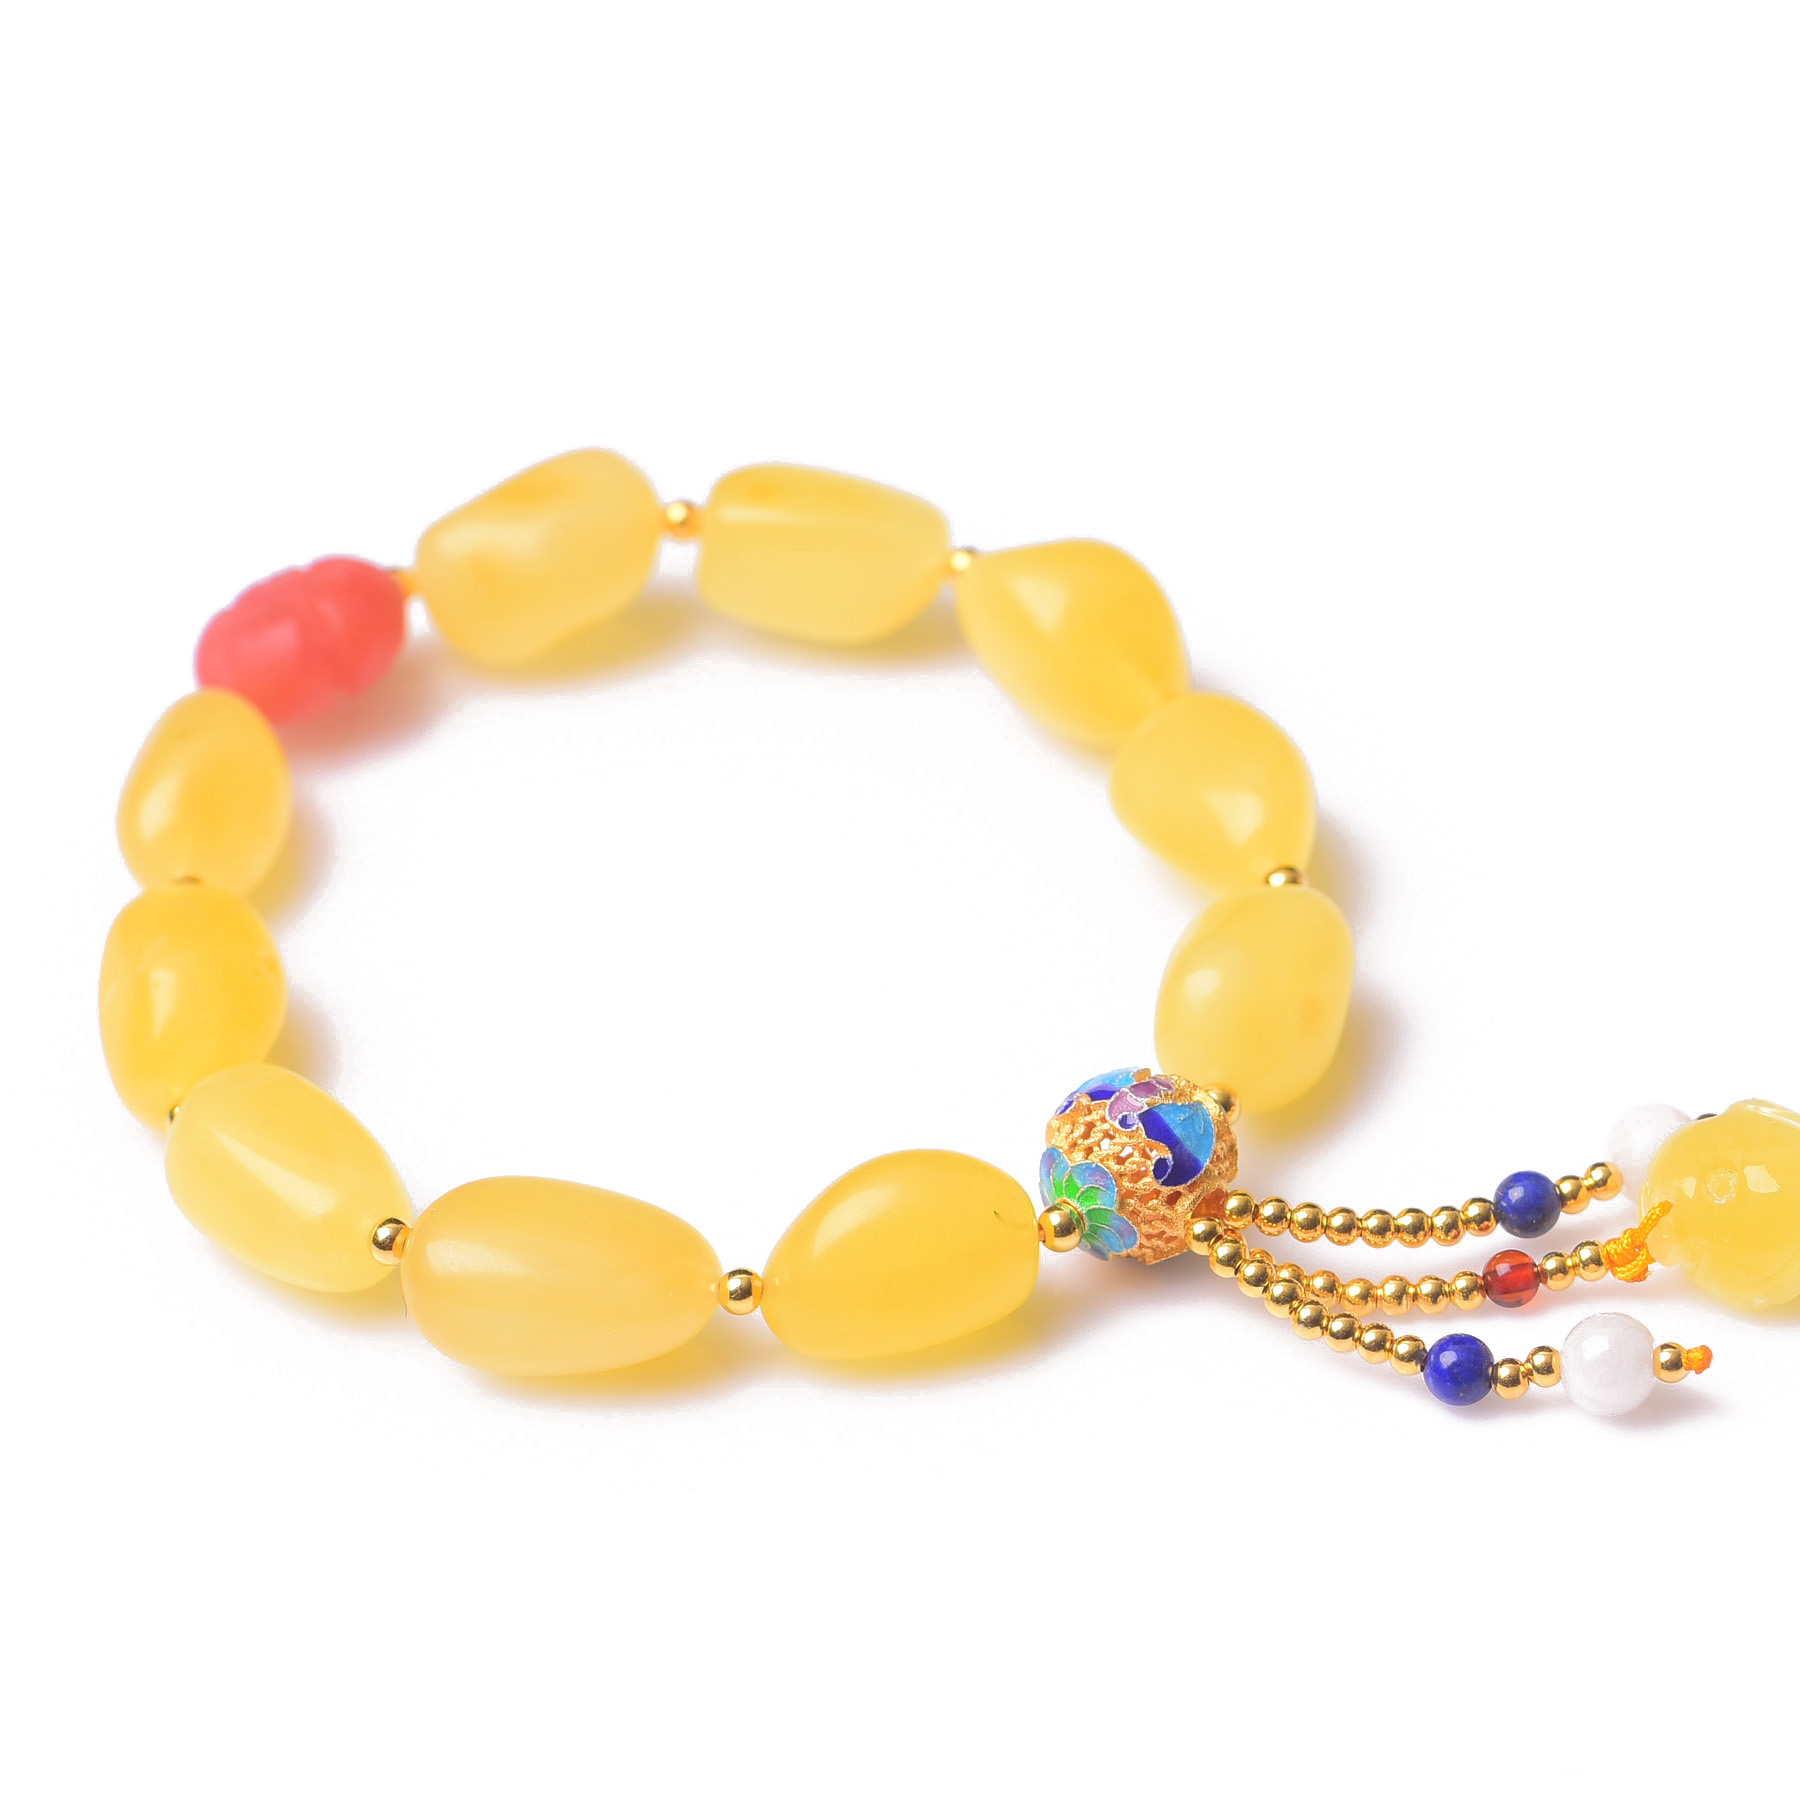 Handmade Authentic Wax Crystal Beads Bracelets carbohydrates 14